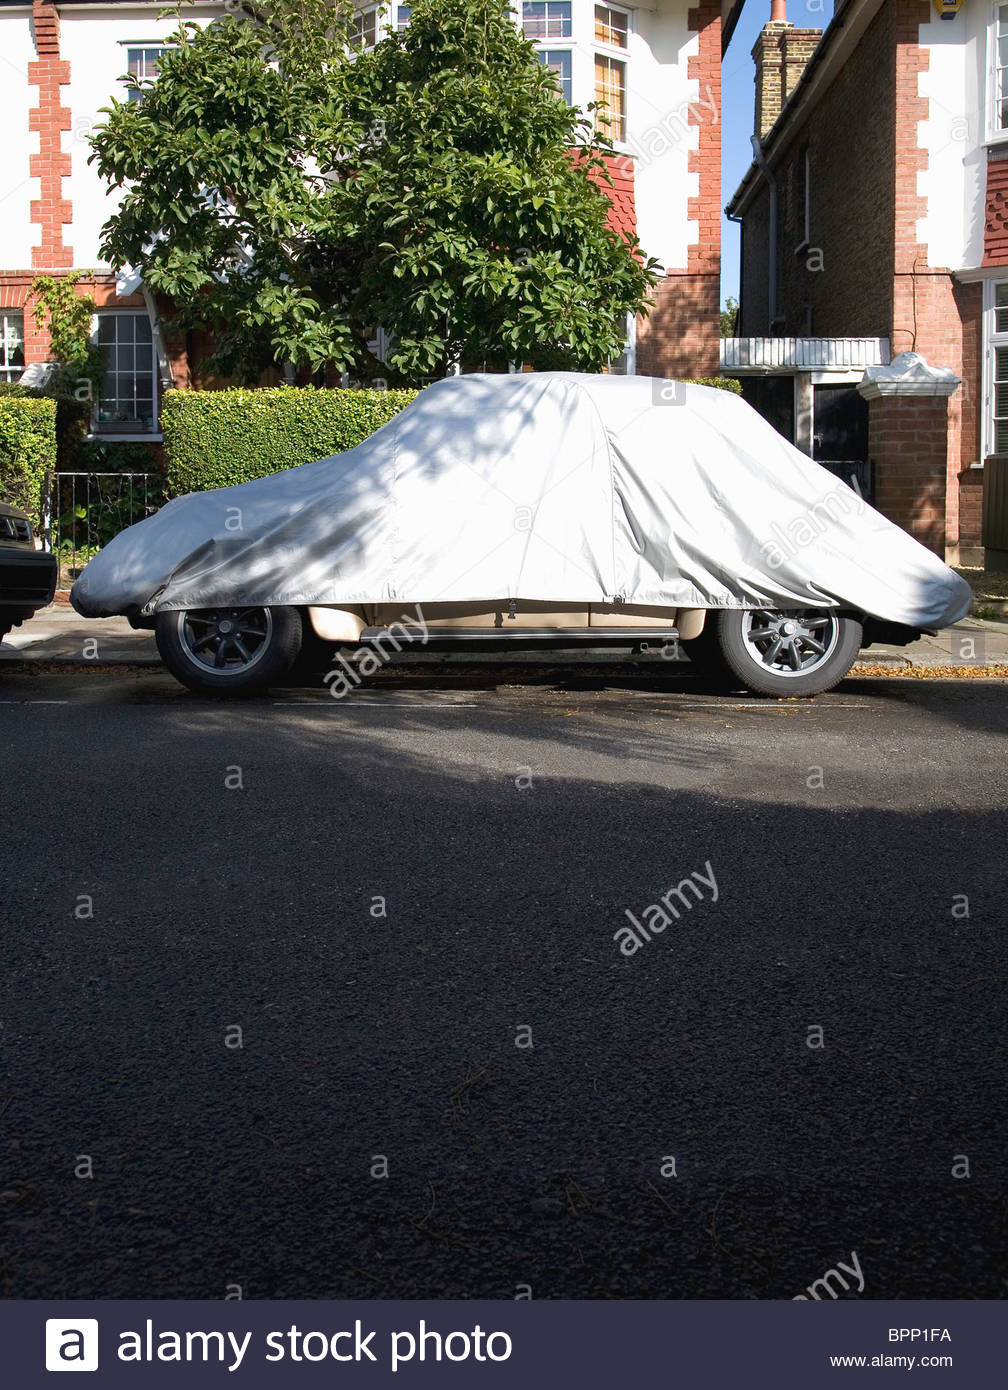 Car covered with car cover - Stock Image